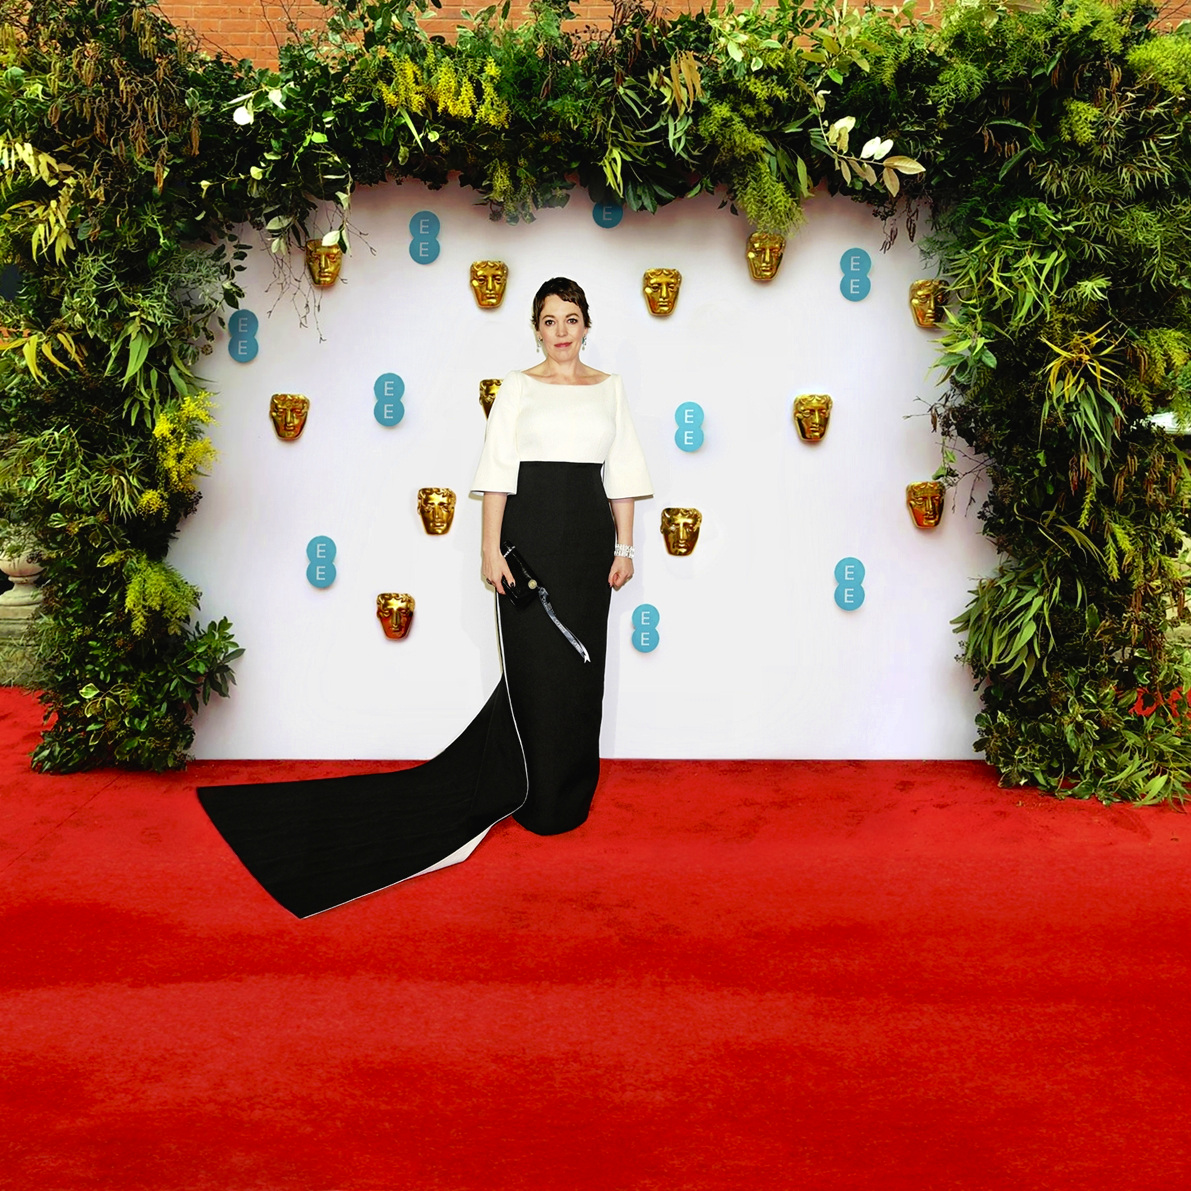 OLIVIA COLMAN ON THE RED CARPET ARRIVING FOR THE 2019 EE BRITISH ACADEMY FILM AWARDS